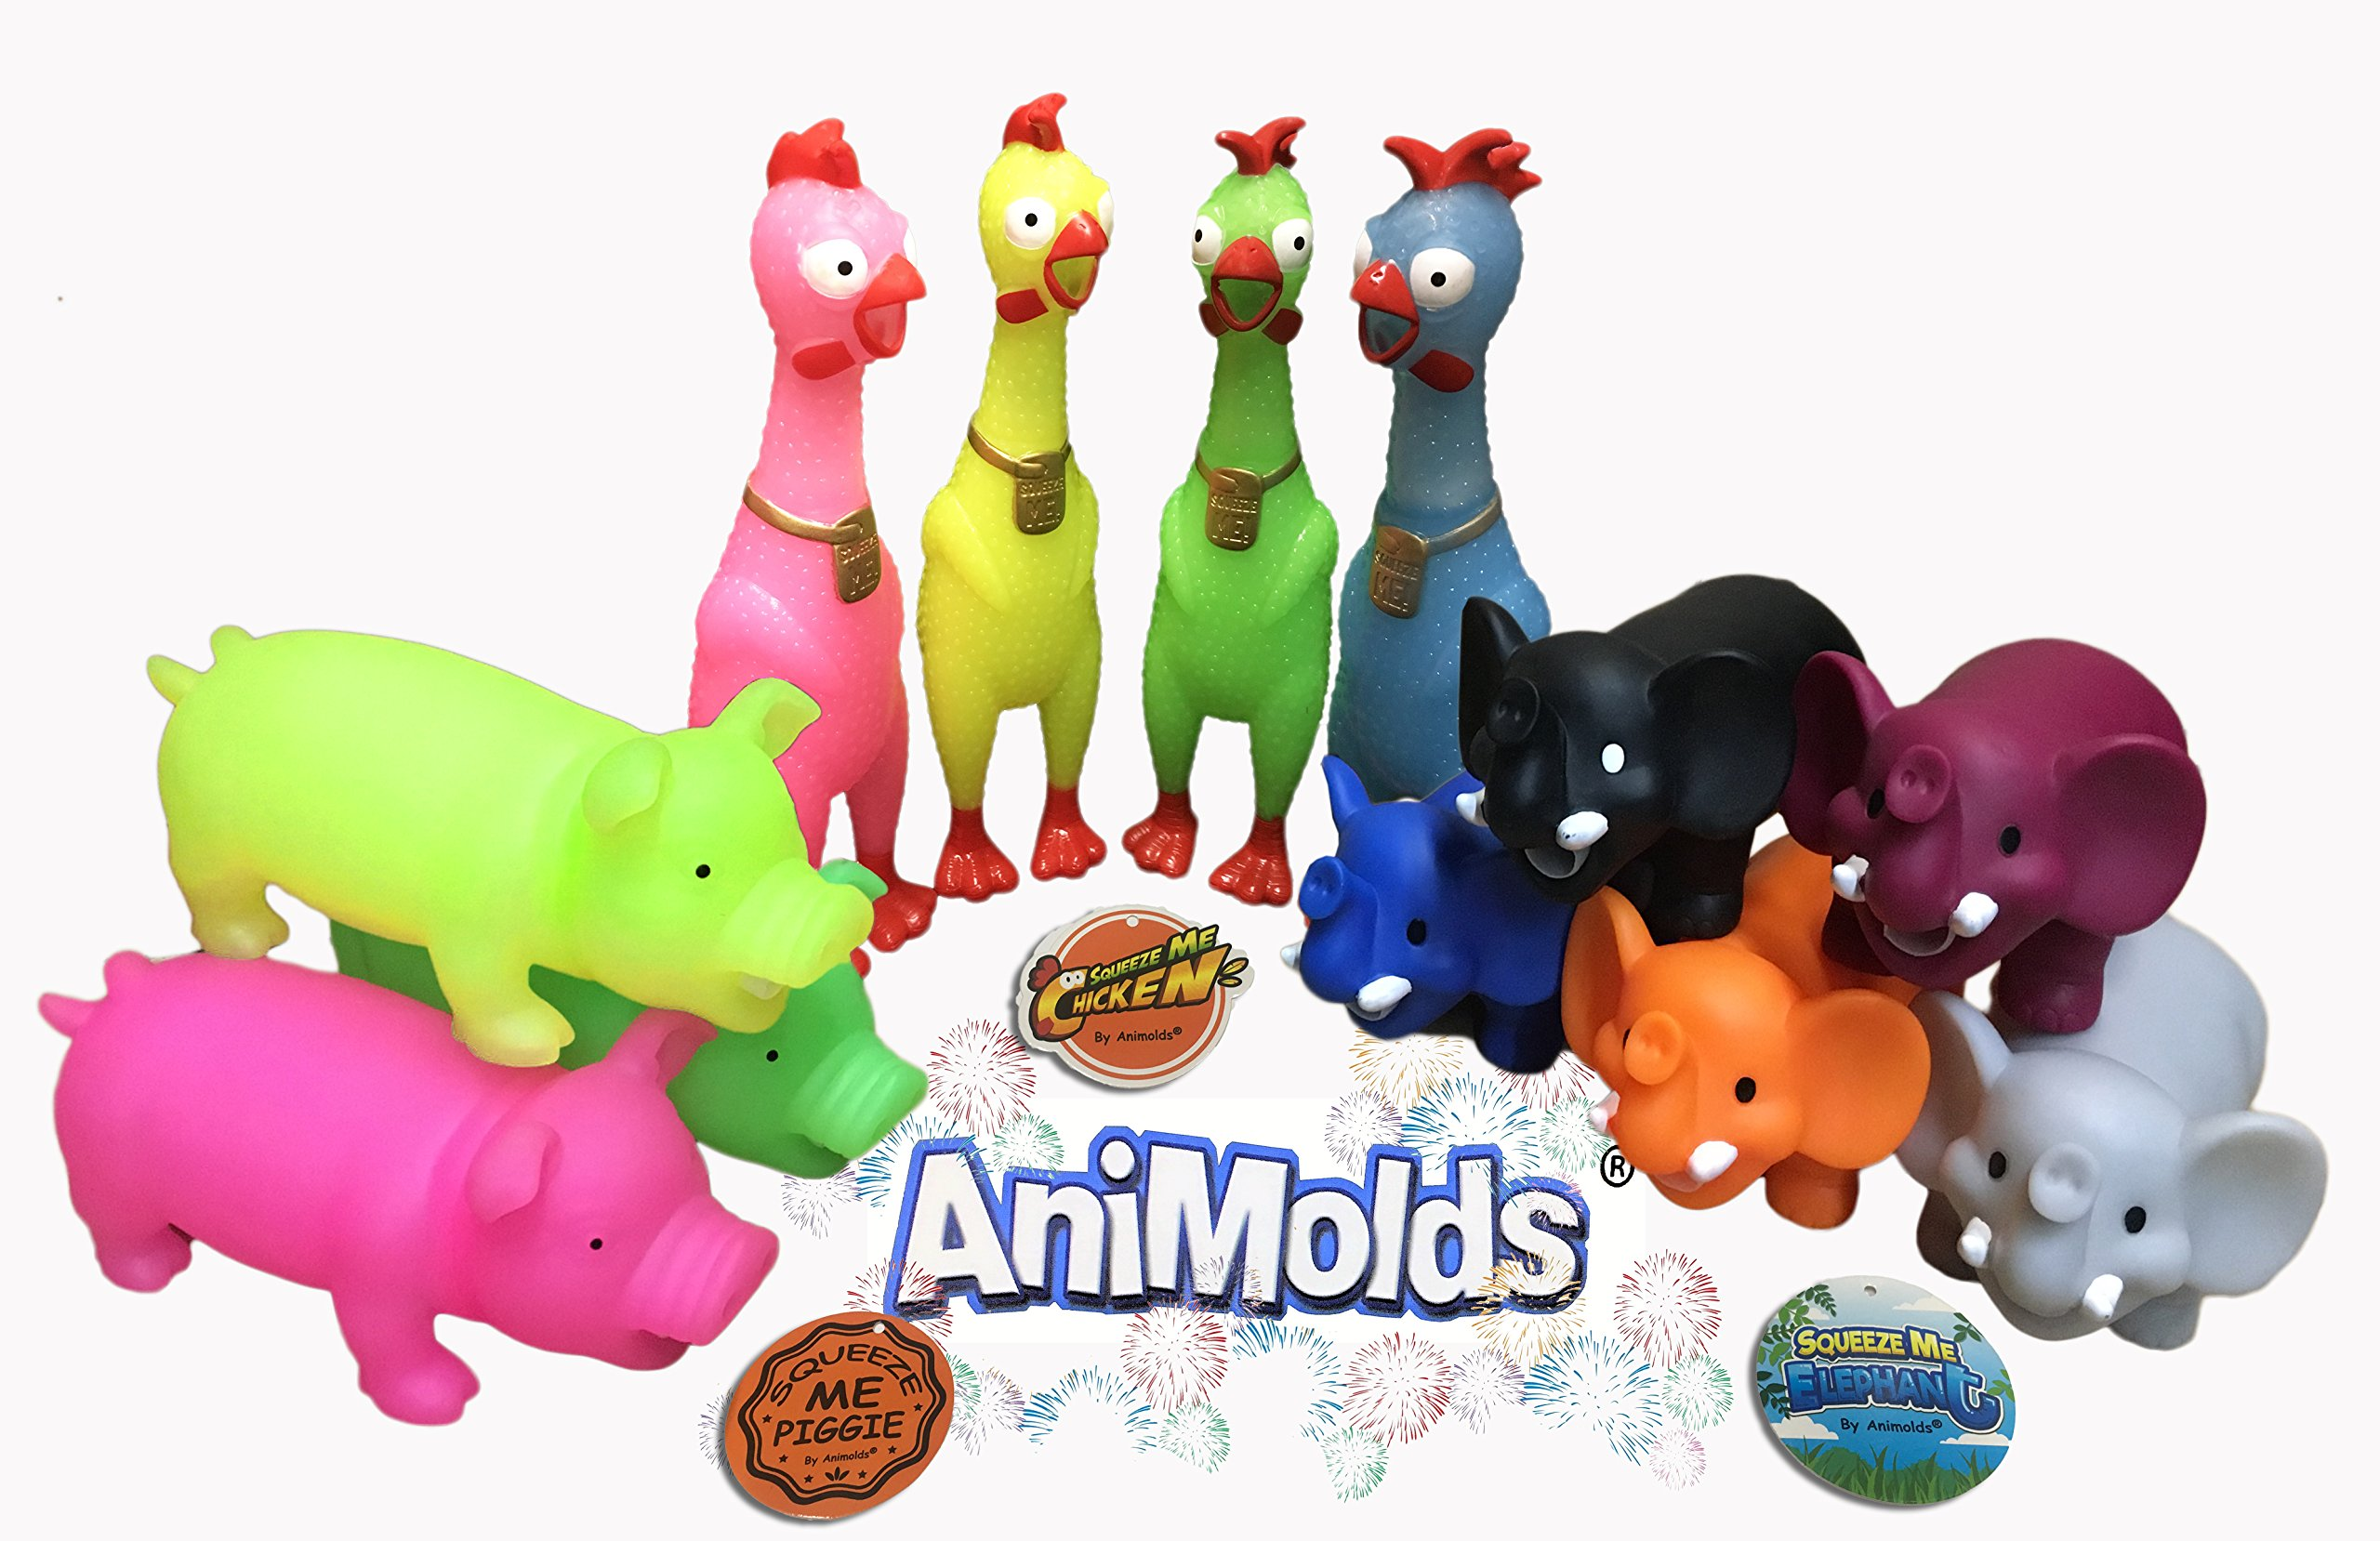 Animolds Animal Toy Pack ''12 Squeeze me Fun Toys'' Elephants Piggies The Despacito Singing Chicken Kids Adults Wholesale & Bulk by Animolds